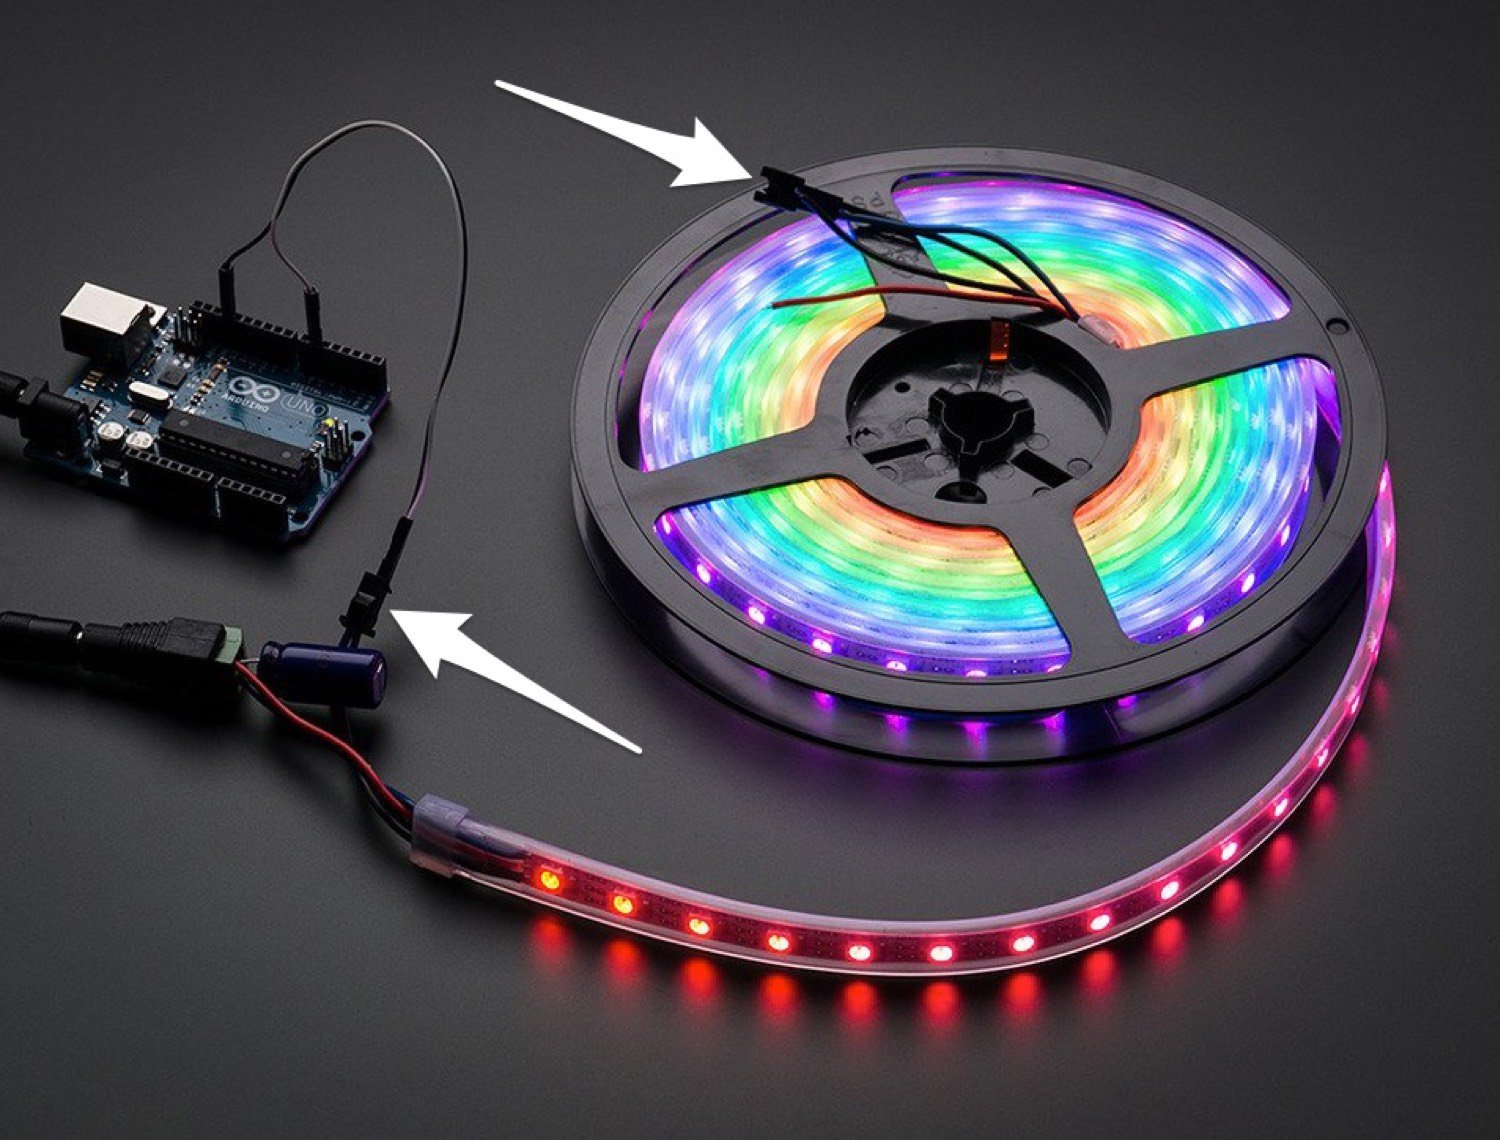 Full-length RGB LED strip in a spool, lit up in rainbow colors. Diagram arrows indicate the LED strip's built-in connectors. One at the end of the spool connects to an Arduino which is driving the strip. The other connector is at the center of the spool.